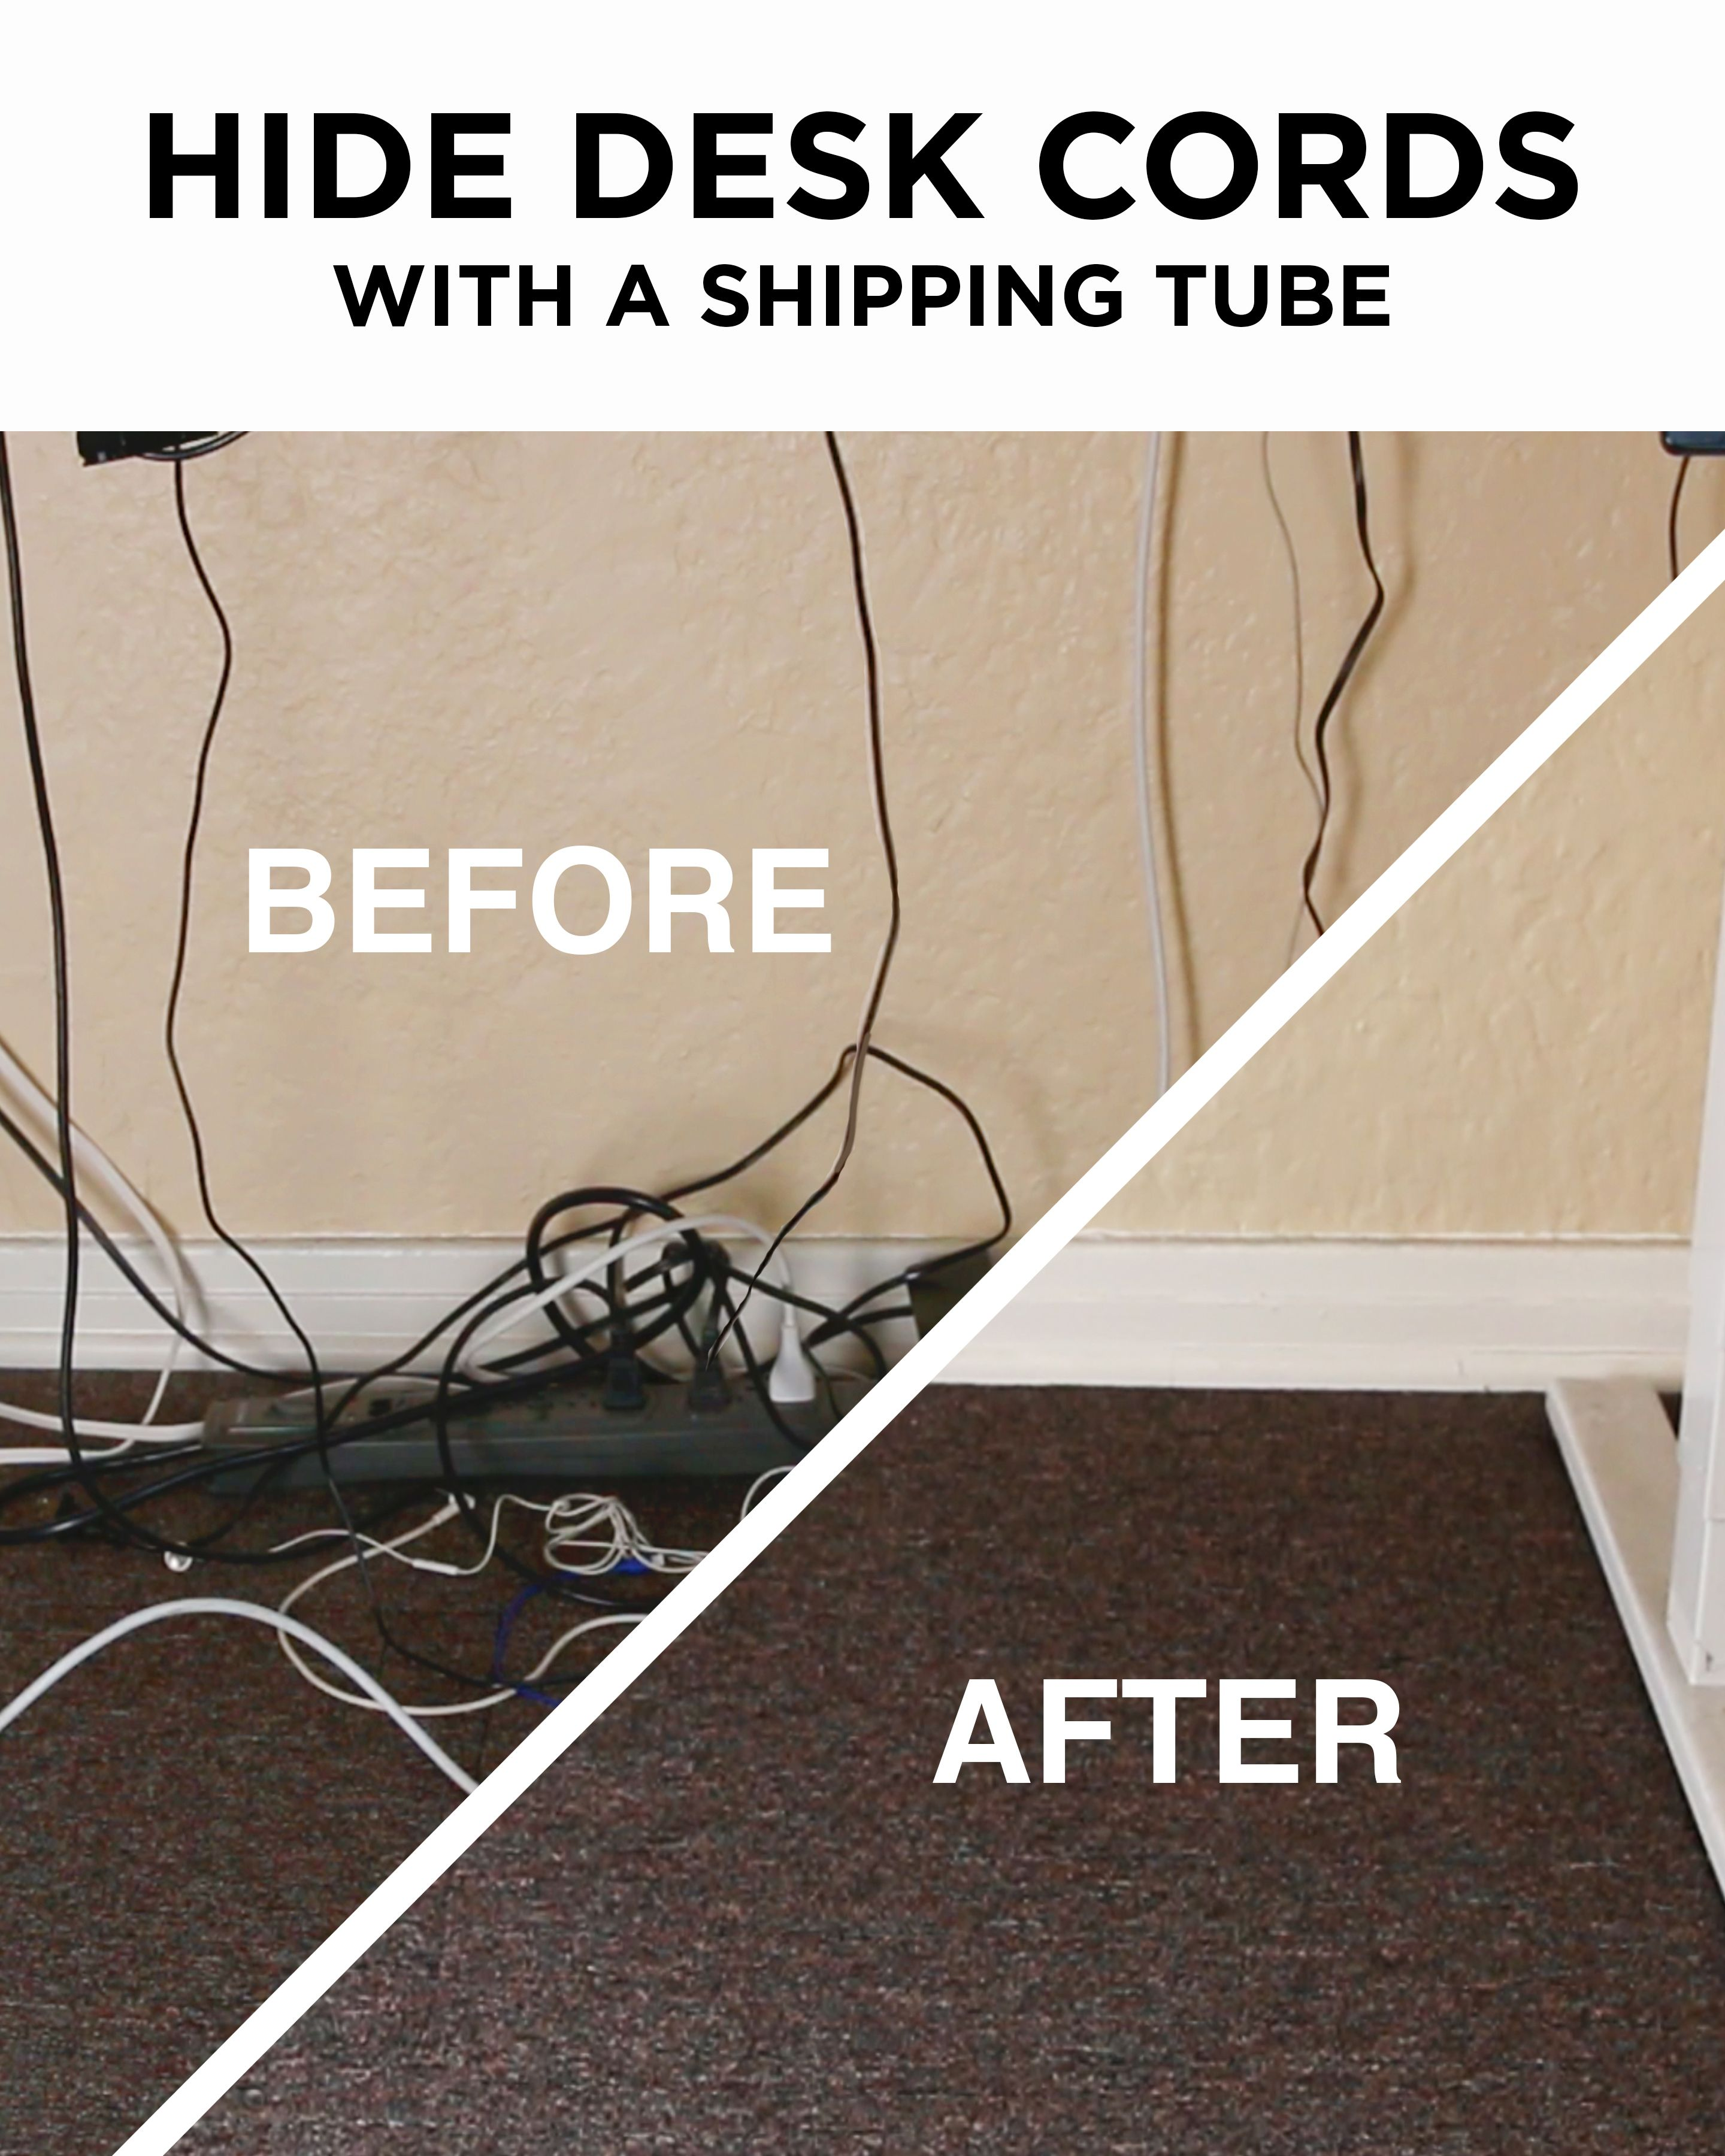 Tangled Cords No More Avec Images Cache Cable Astuce Rangement Multiprise